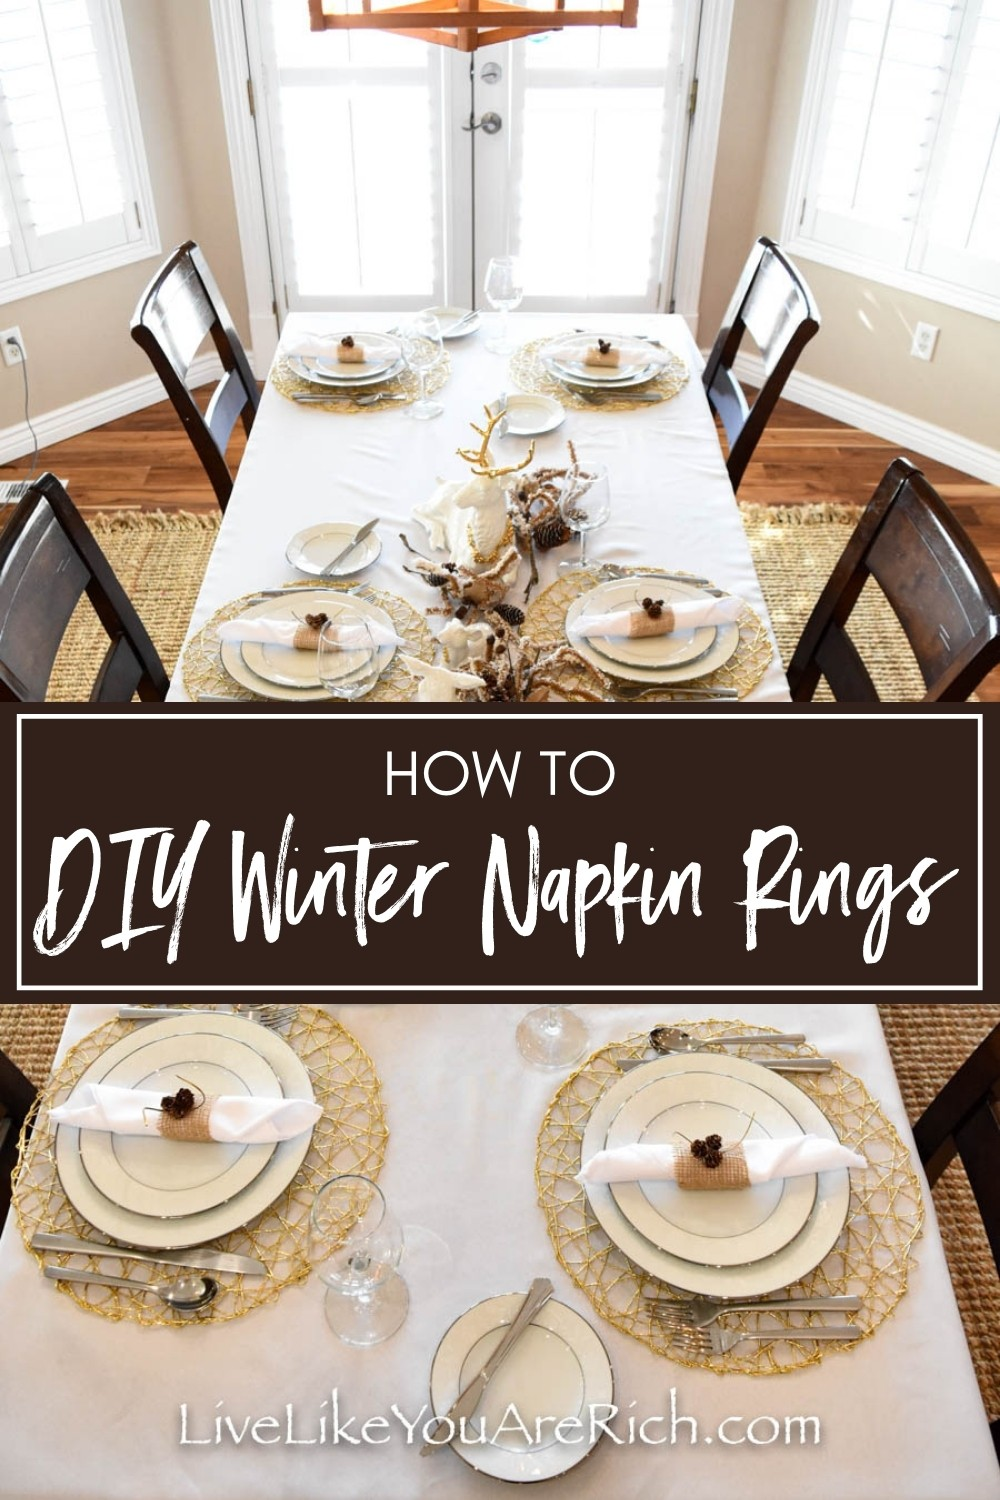 Recently, I decided to make these DIY Winter Napkin Rings to match my white winter tablescape. These napkin rings came together pretty last minute. I had about 2 hours before some family arrived for a Christmas dinner and I still hadn't set the table or finished the food! It only takes 45 minutes to make 10 of these napkin rings.